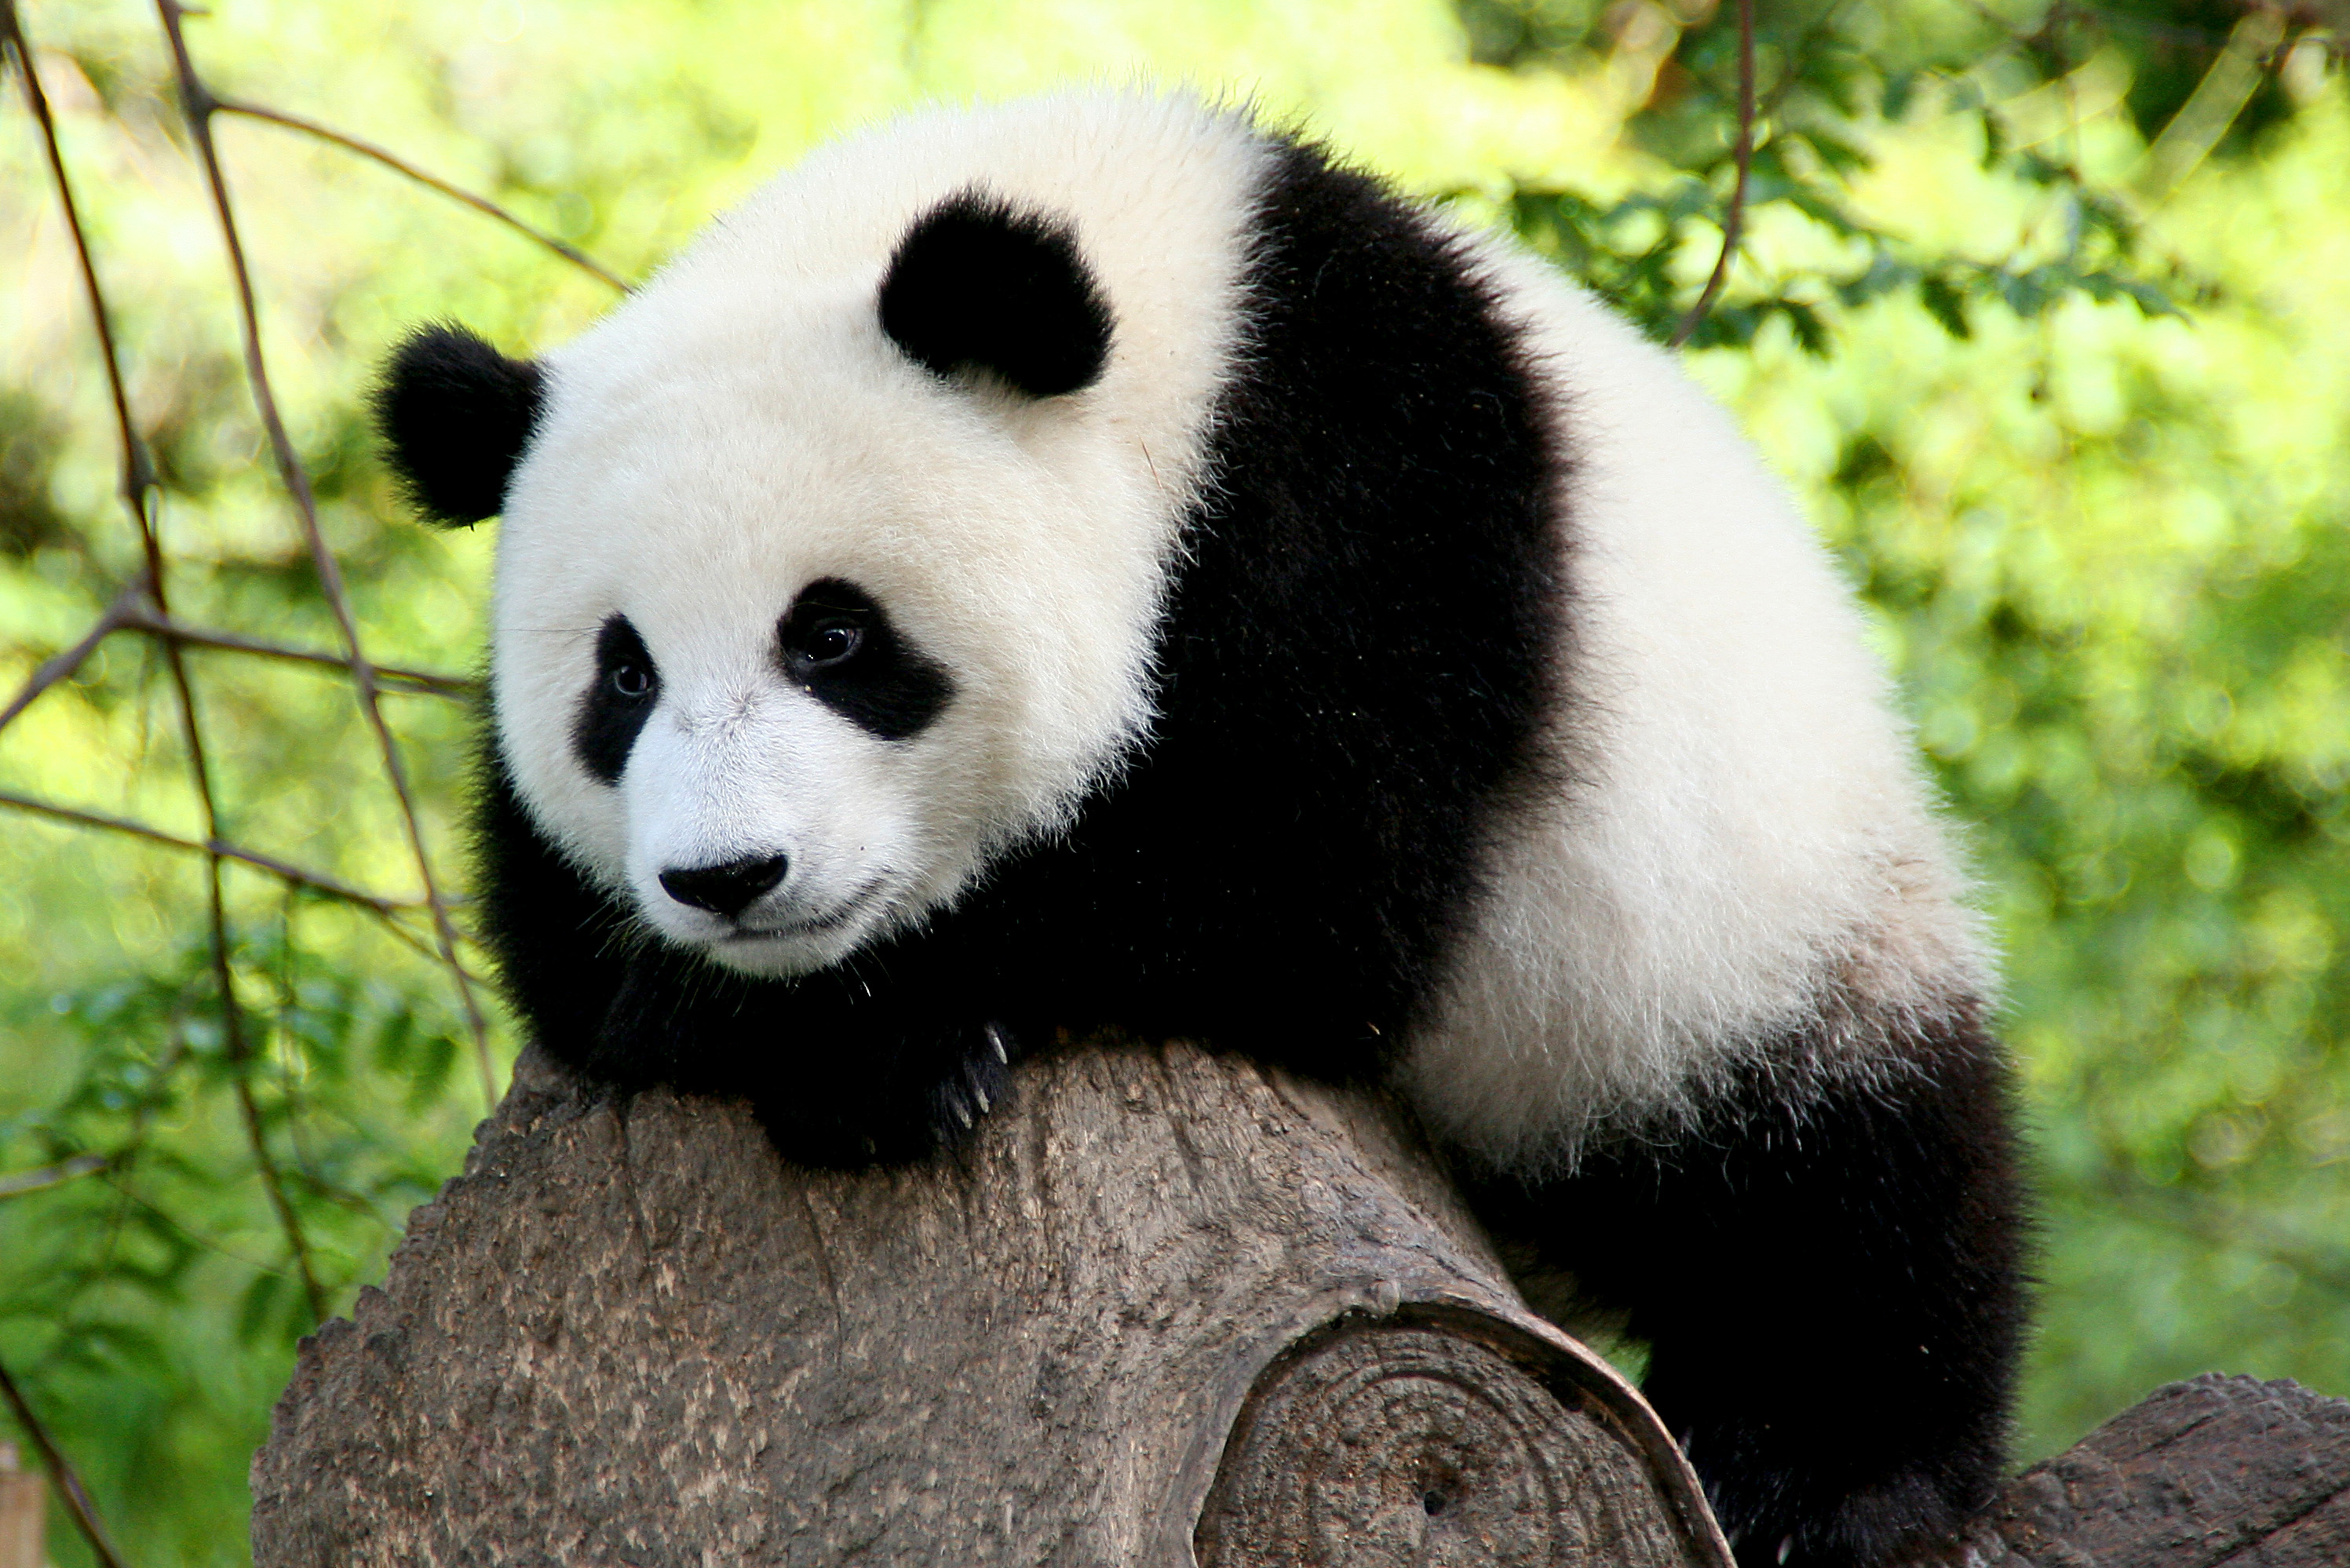 Panda Facts, History, Useful Information and Amazing Pictures